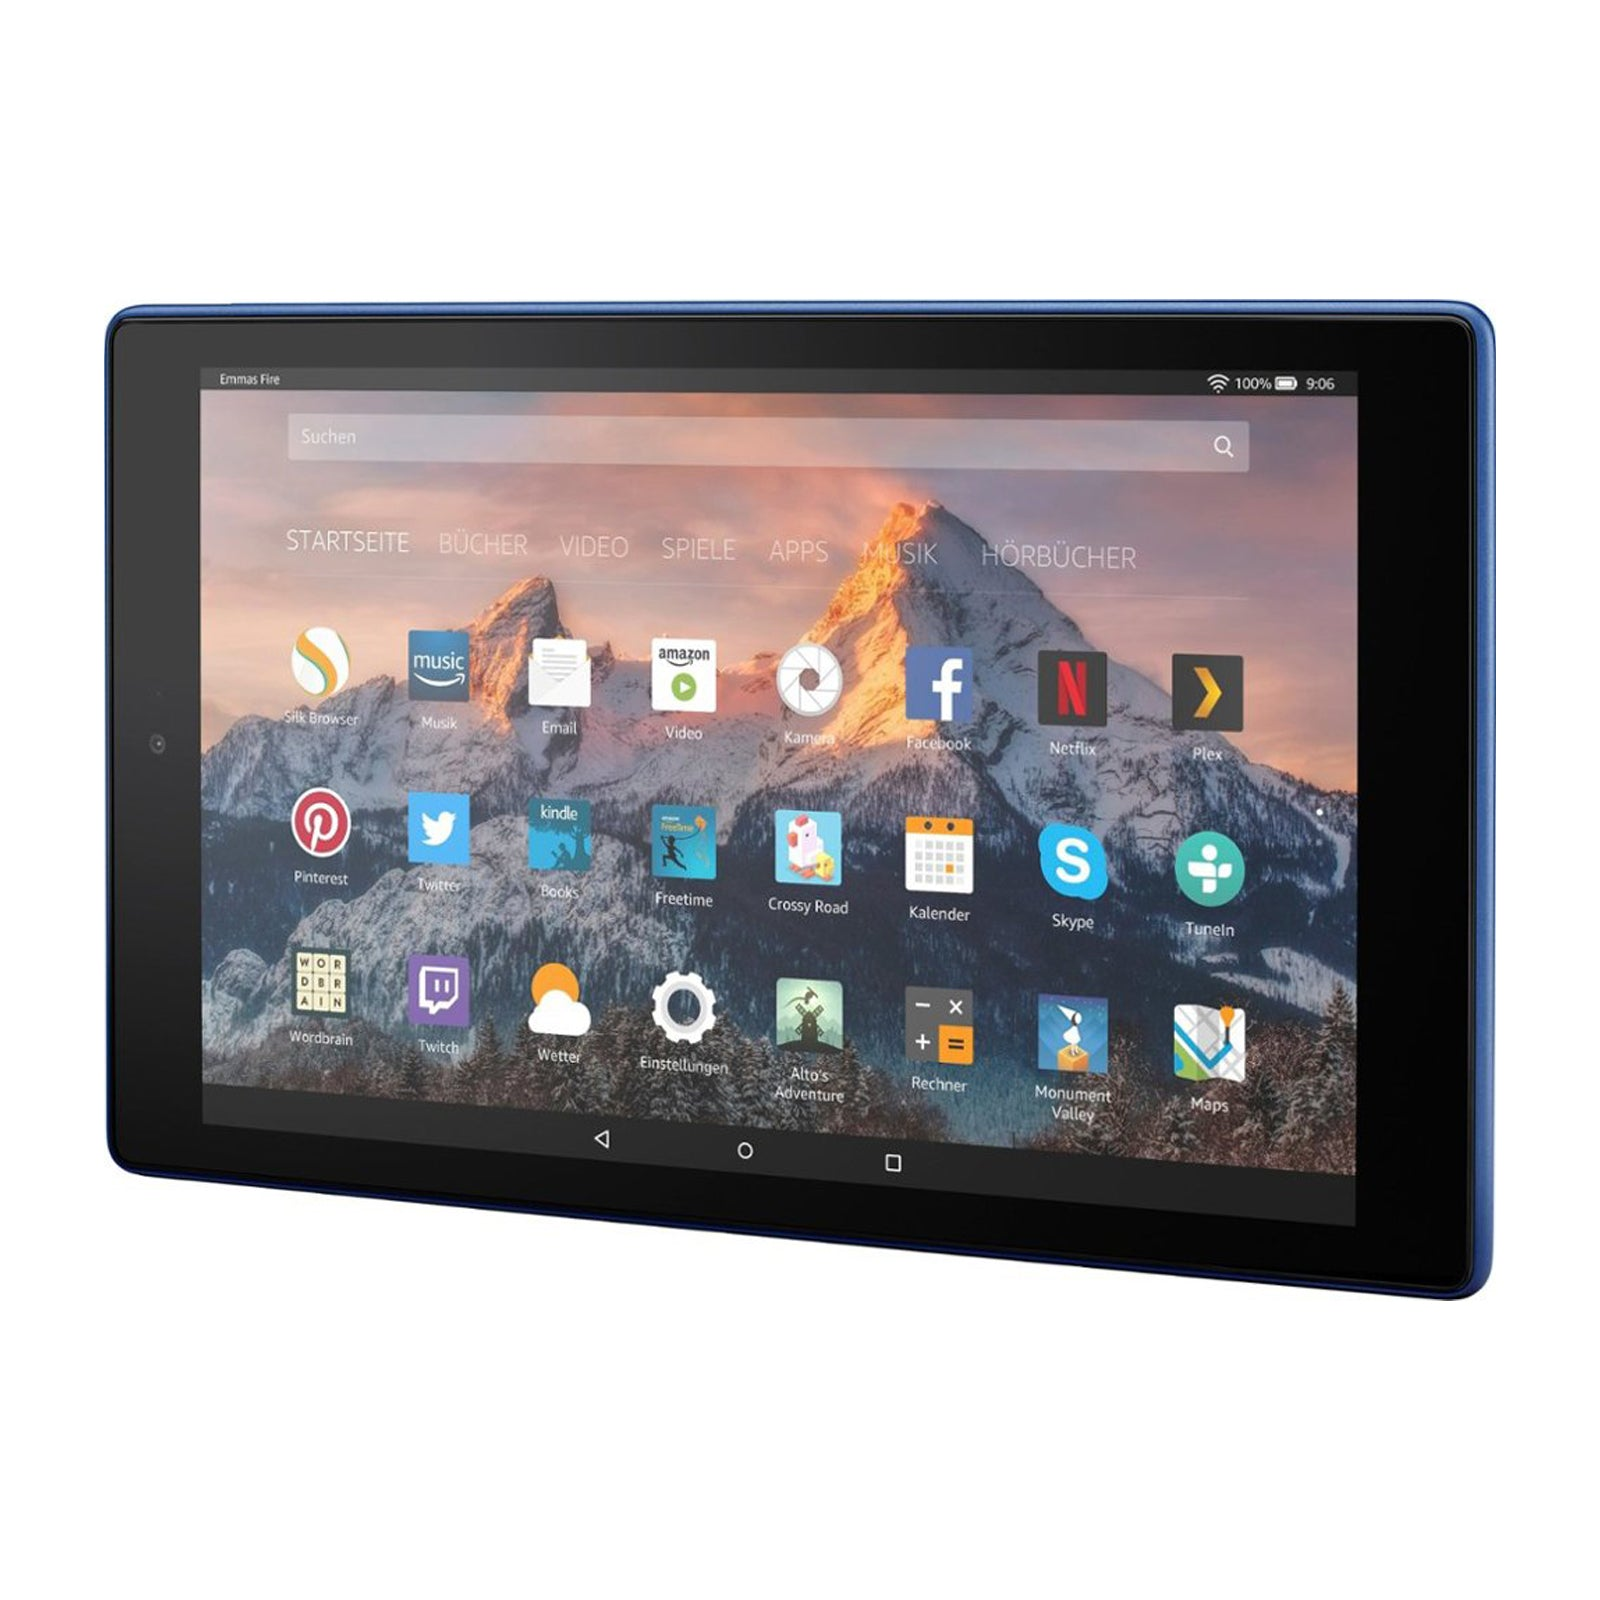 Amazon 10.1 - Inch Fire HD 10 Tablet 32 GB with Alexa - (Marine Blue)